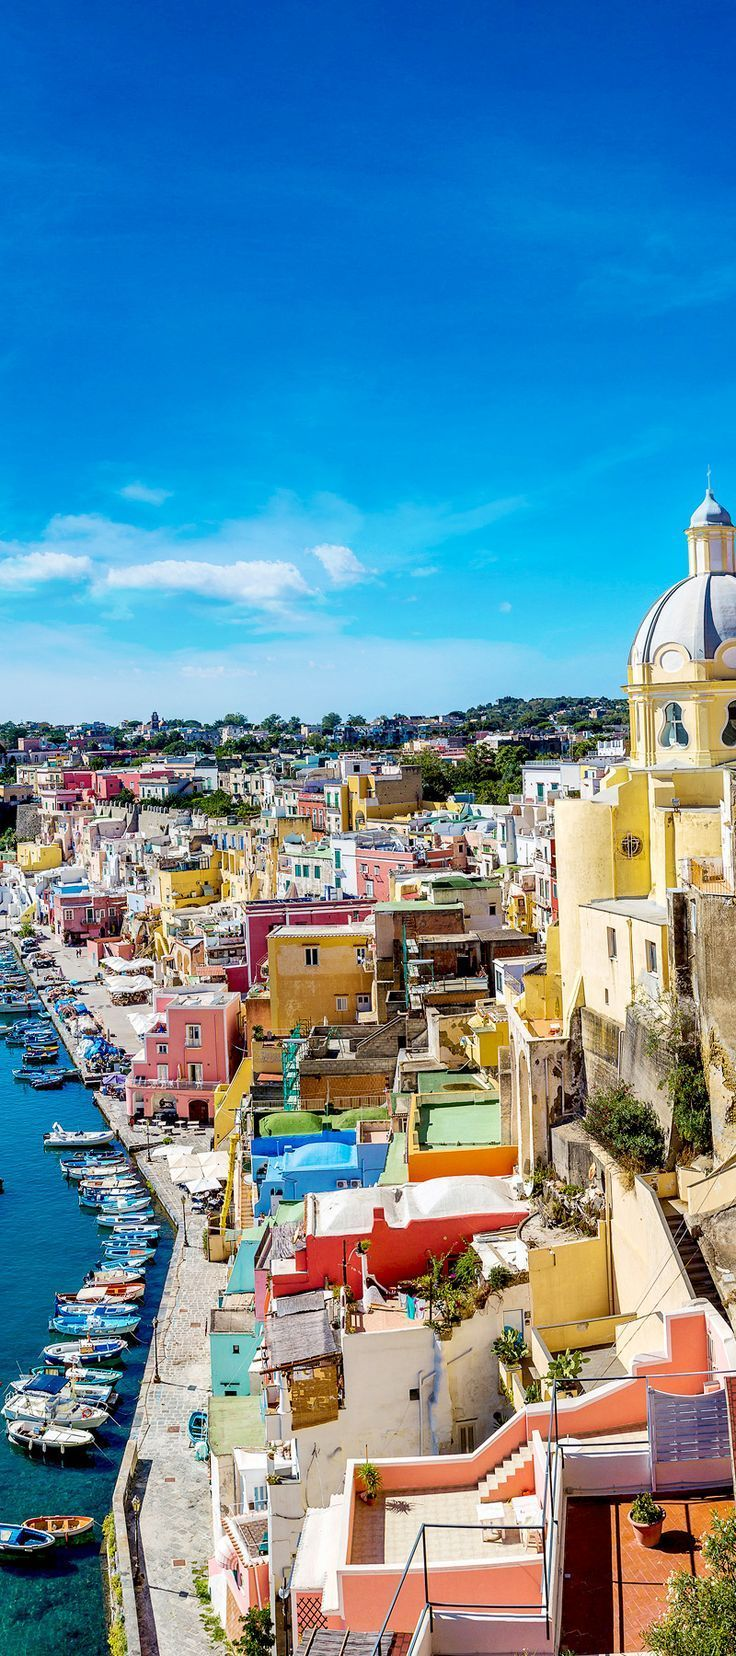 Procida is an island in the Bay of Naples in southern Italy. Its picturesque landscape and somewhat scruffy charm are among the reasons it still attracts travel